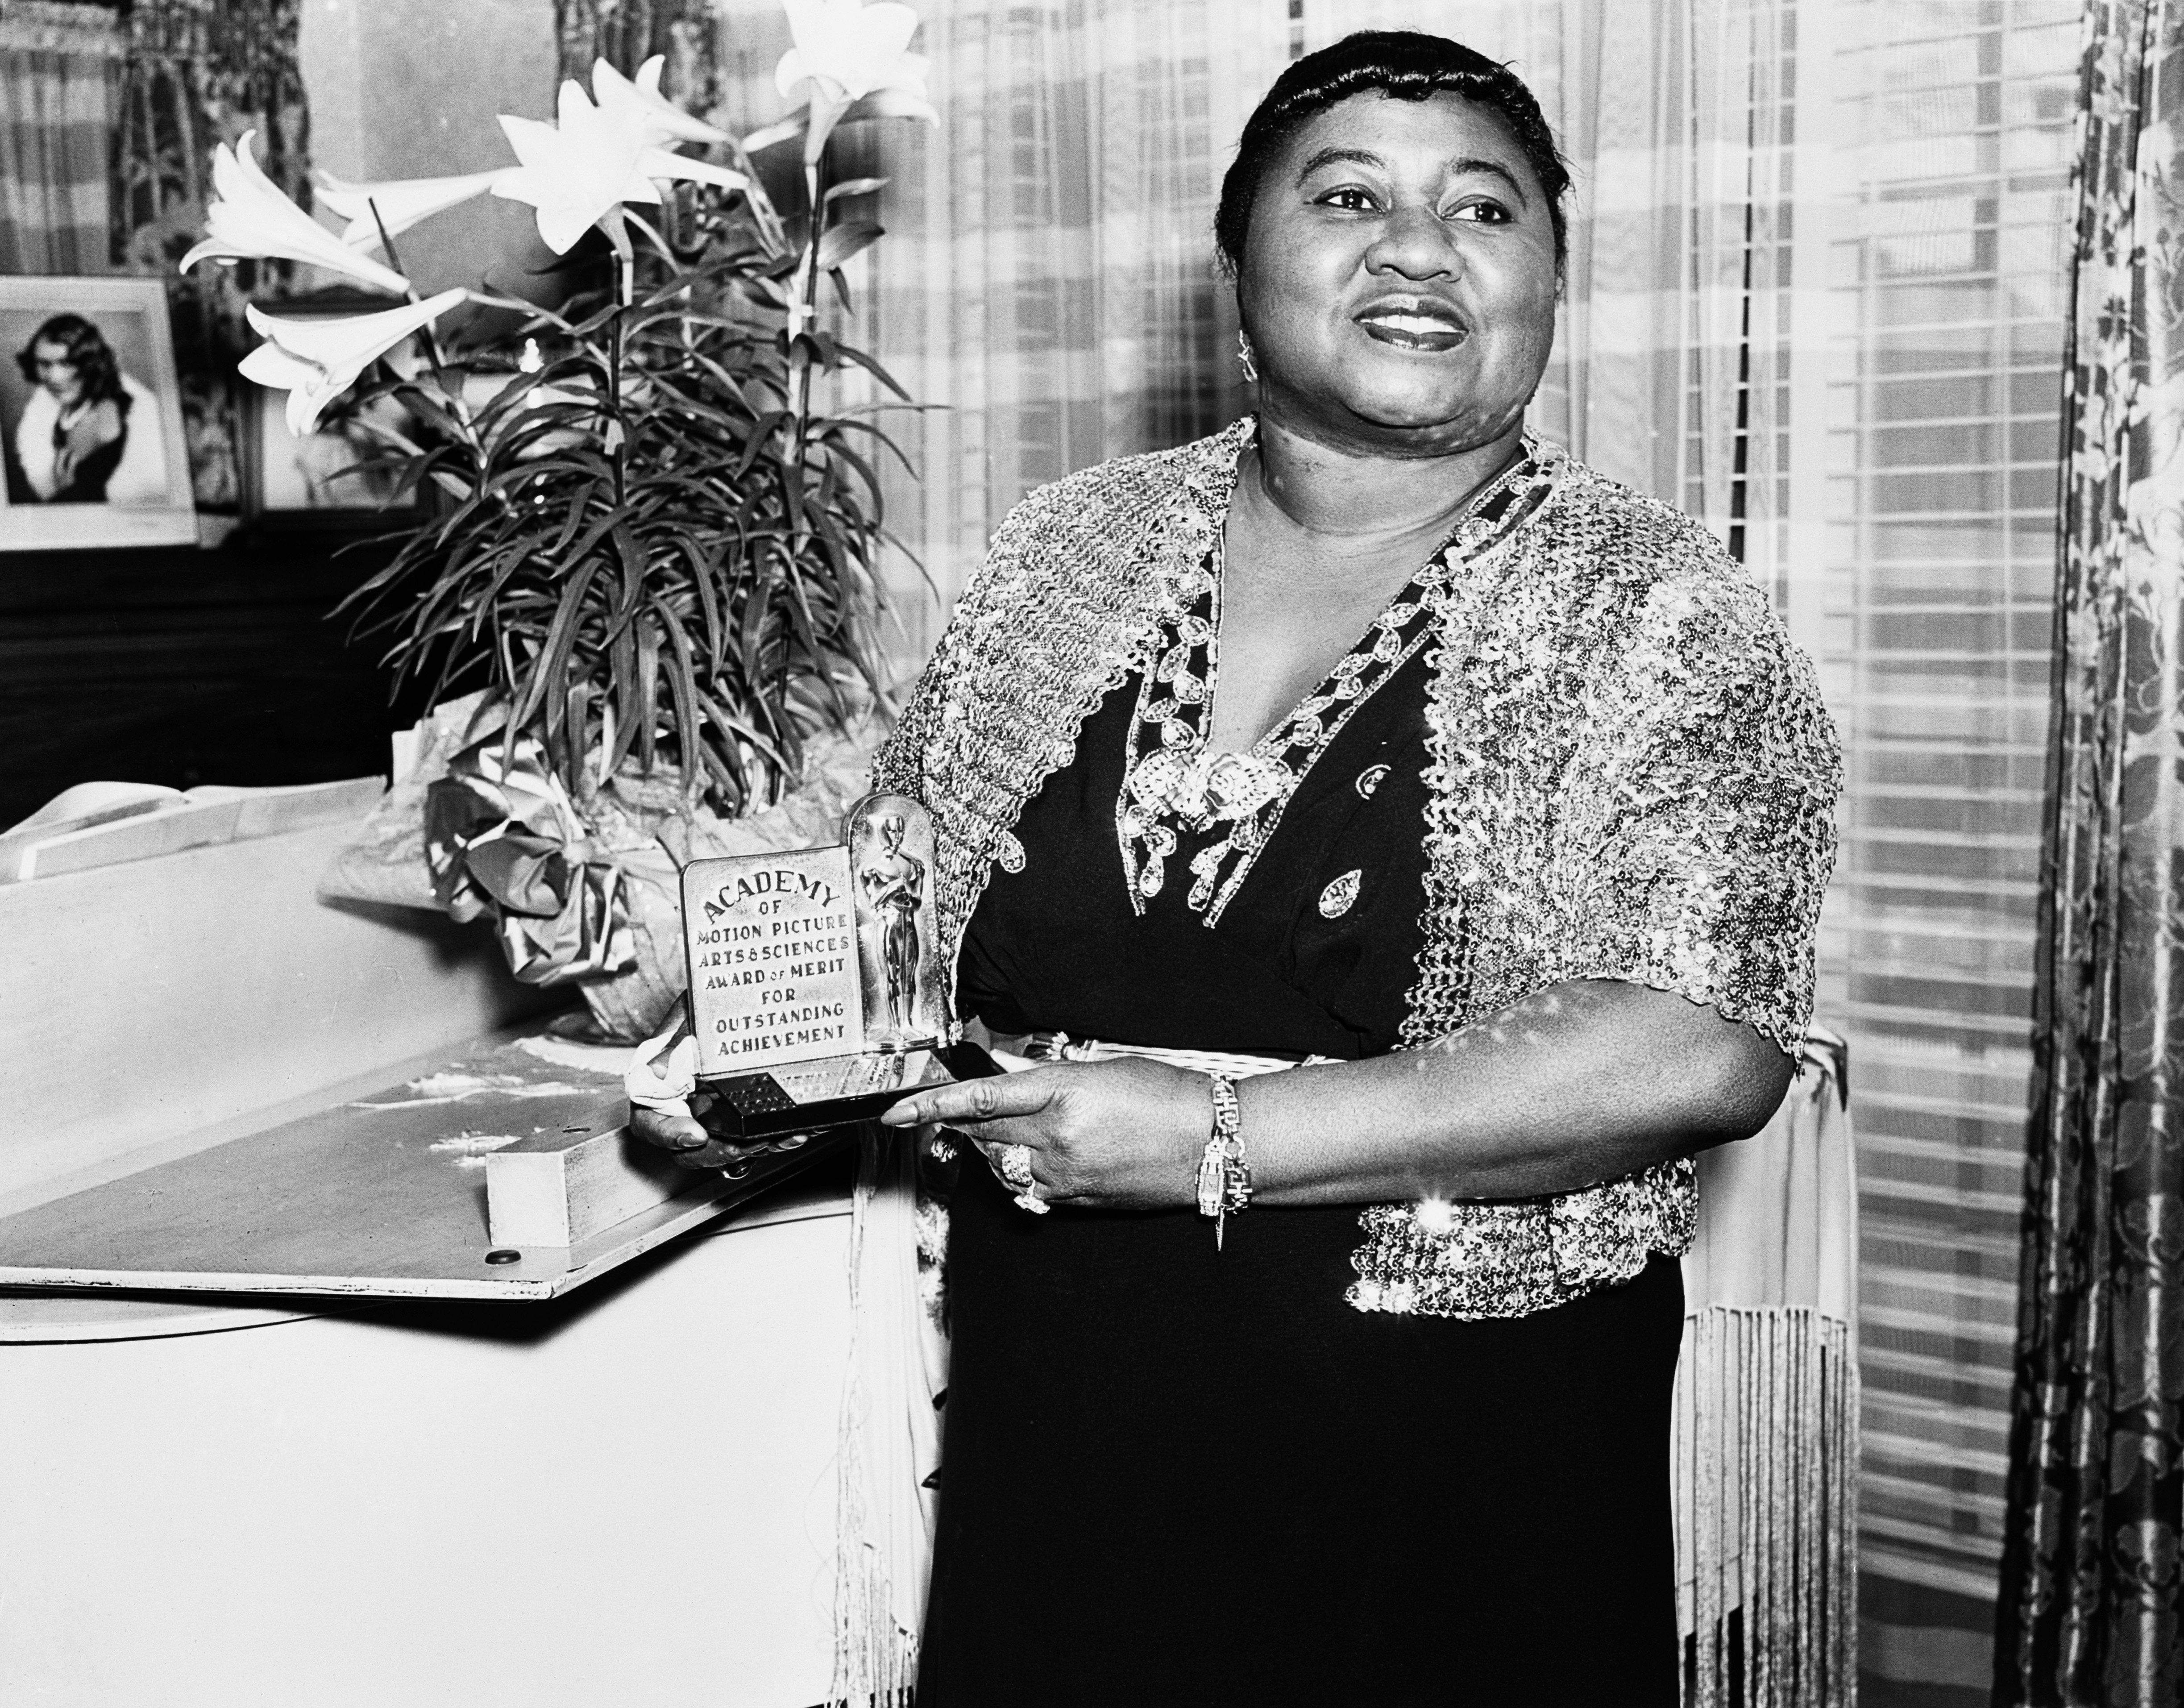 American actress Hattie McDaniel (1895 - 1952) with her Academy Award of Merit for Outstanding Achievement, circa 1945. McDaniel won an Oscar for Best Supporting Actress for her role of Mammy in 'Gone With The Wind', making her the first African-American to win an Academy Award. (Photo via John Kobal Foundation/Getty Images)